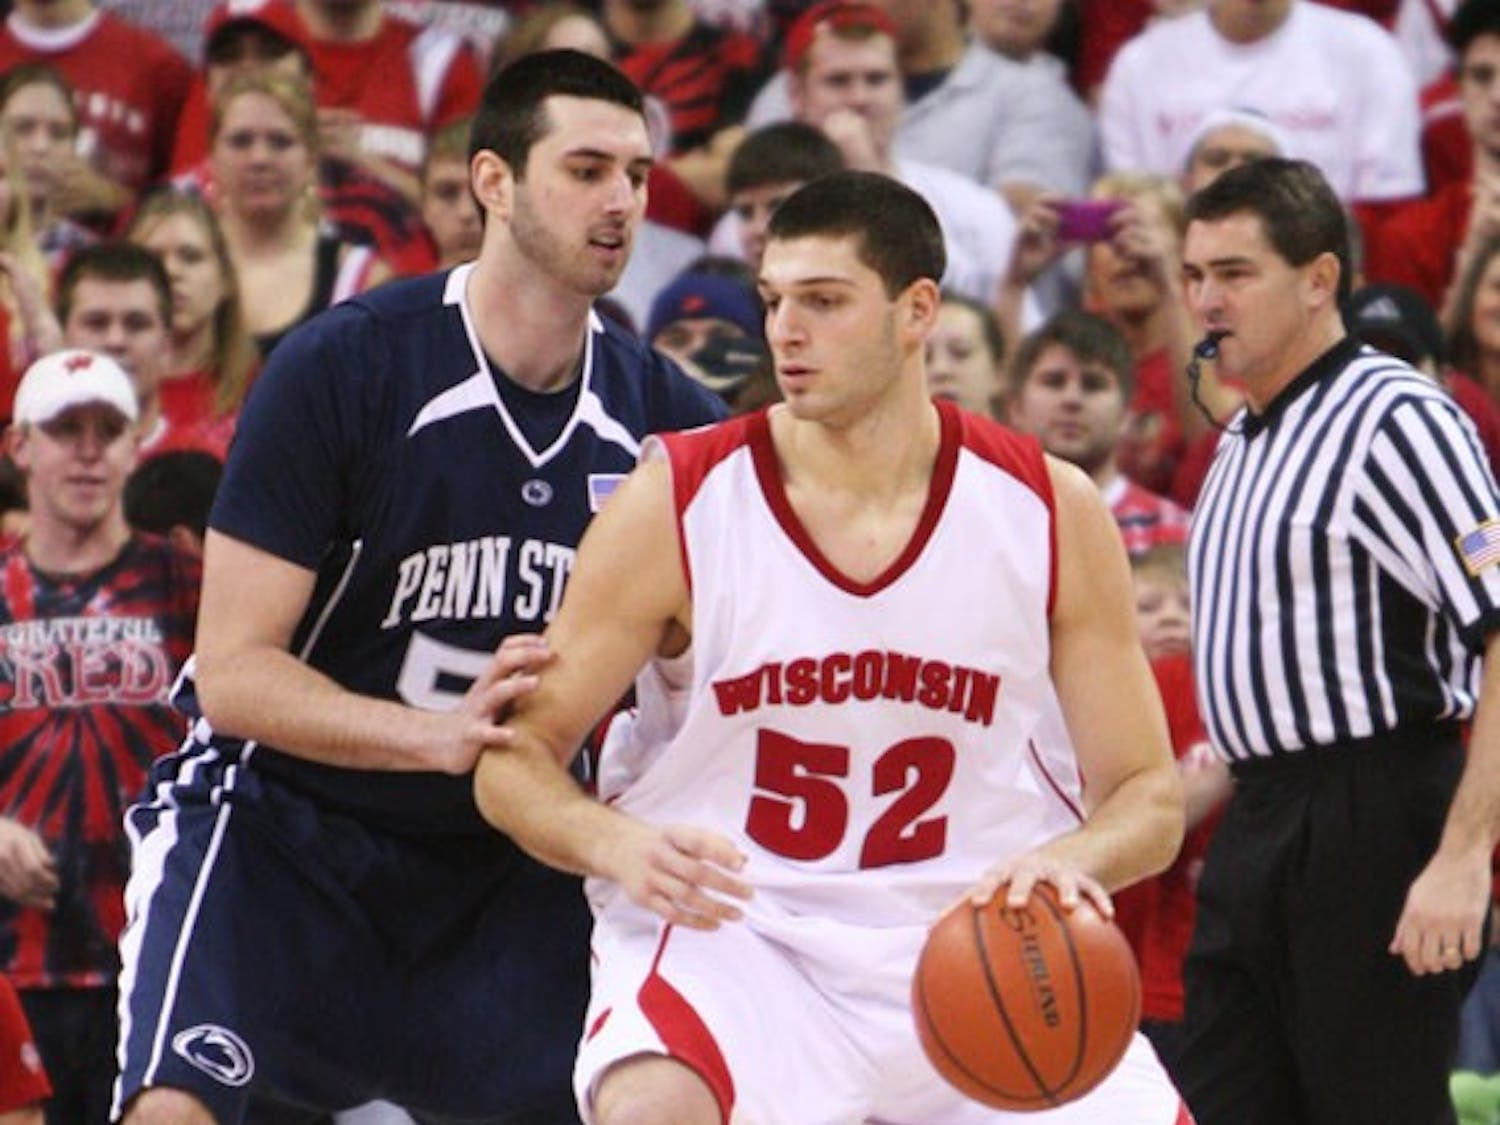 Badgers survive scare at the hands of Penn State